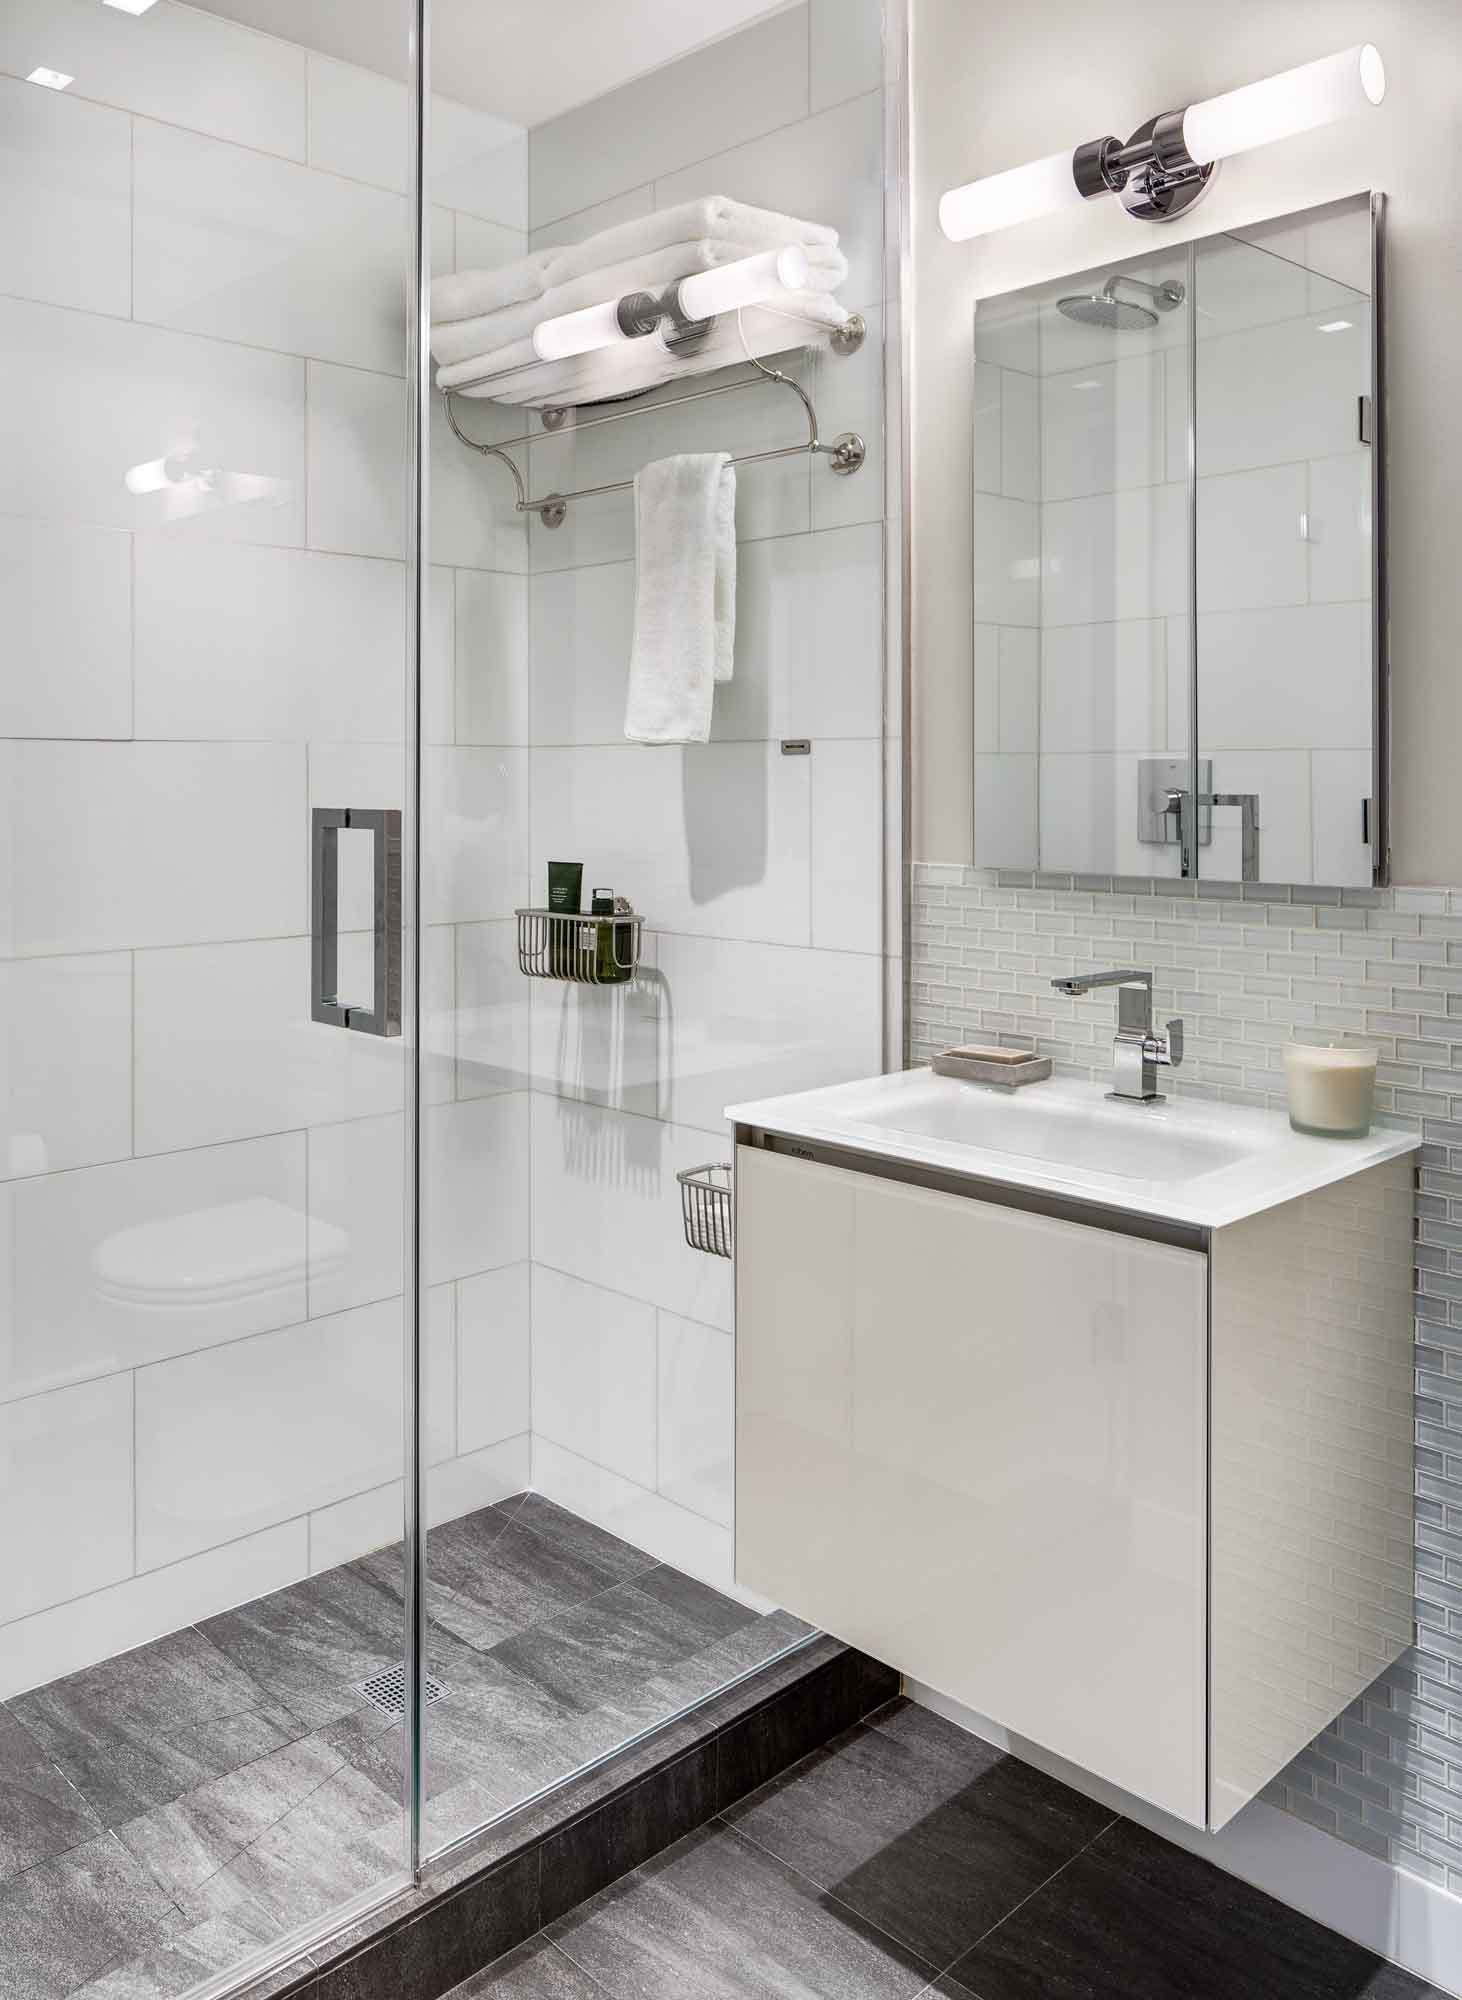 The abundance of sparkling surfaces adds a high style to the interior of this bathroom. A few elegant small lamps are used in this bathroom, the light from which is perfectly reflected by polished, mirrored and glass surfaces. This reflection makes the bathroom look bright. In addition, the white surfaces create a sense of space. If you are looking to improve your bathroom interior design, then do it the right way by choosing one of the leading design studios in New York – Grandeur Hills Group.